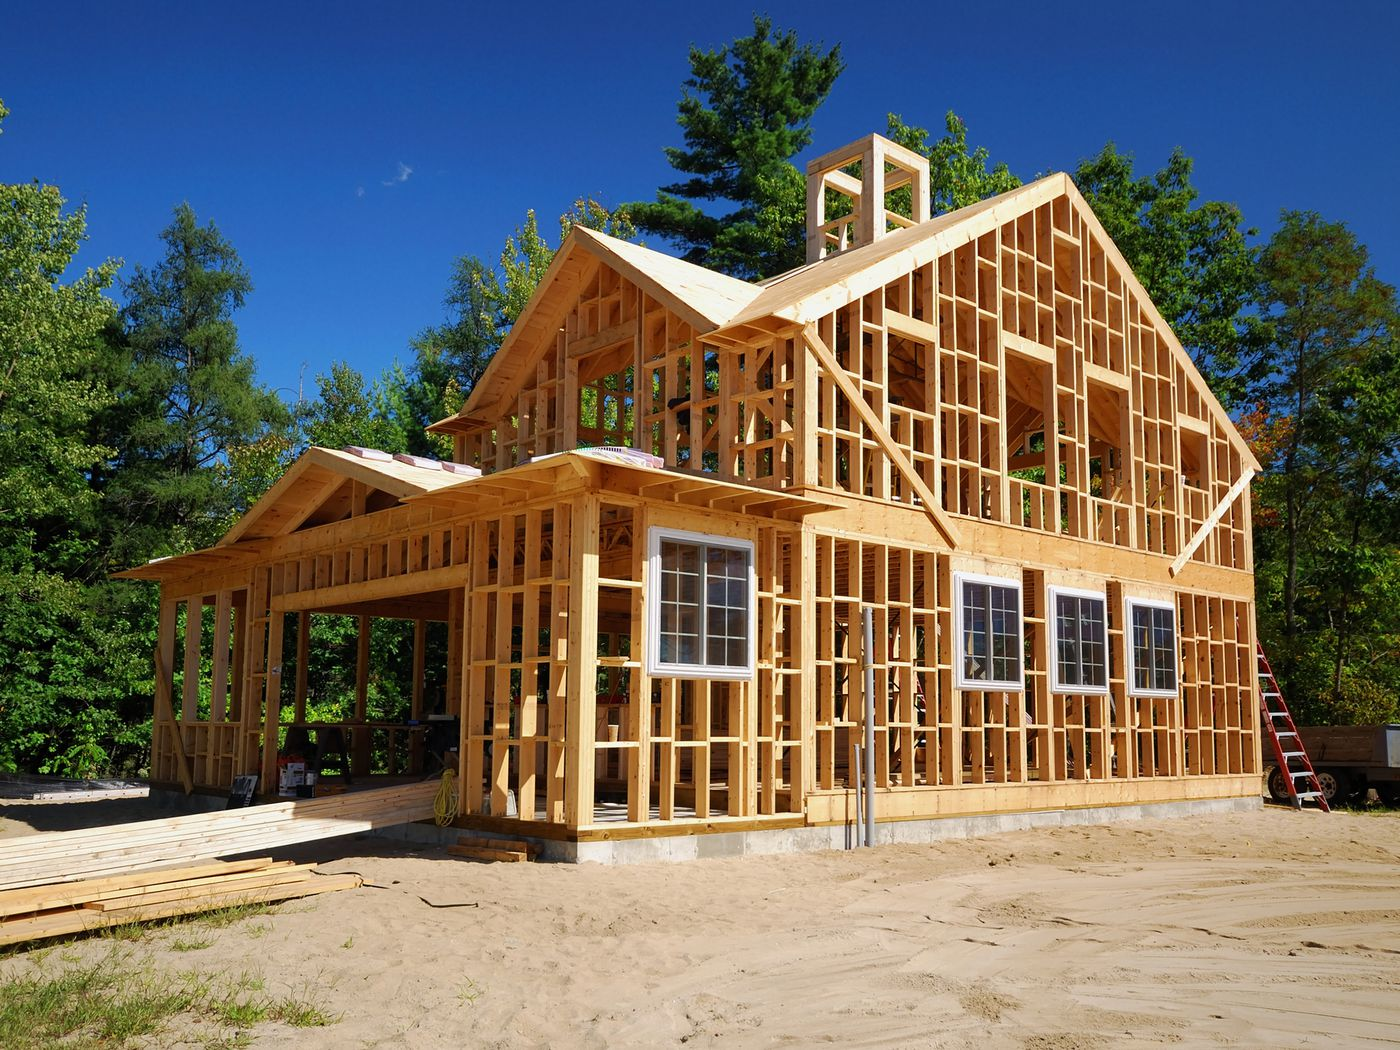 5 Construction Laws To Know Before You Build A House This Old House